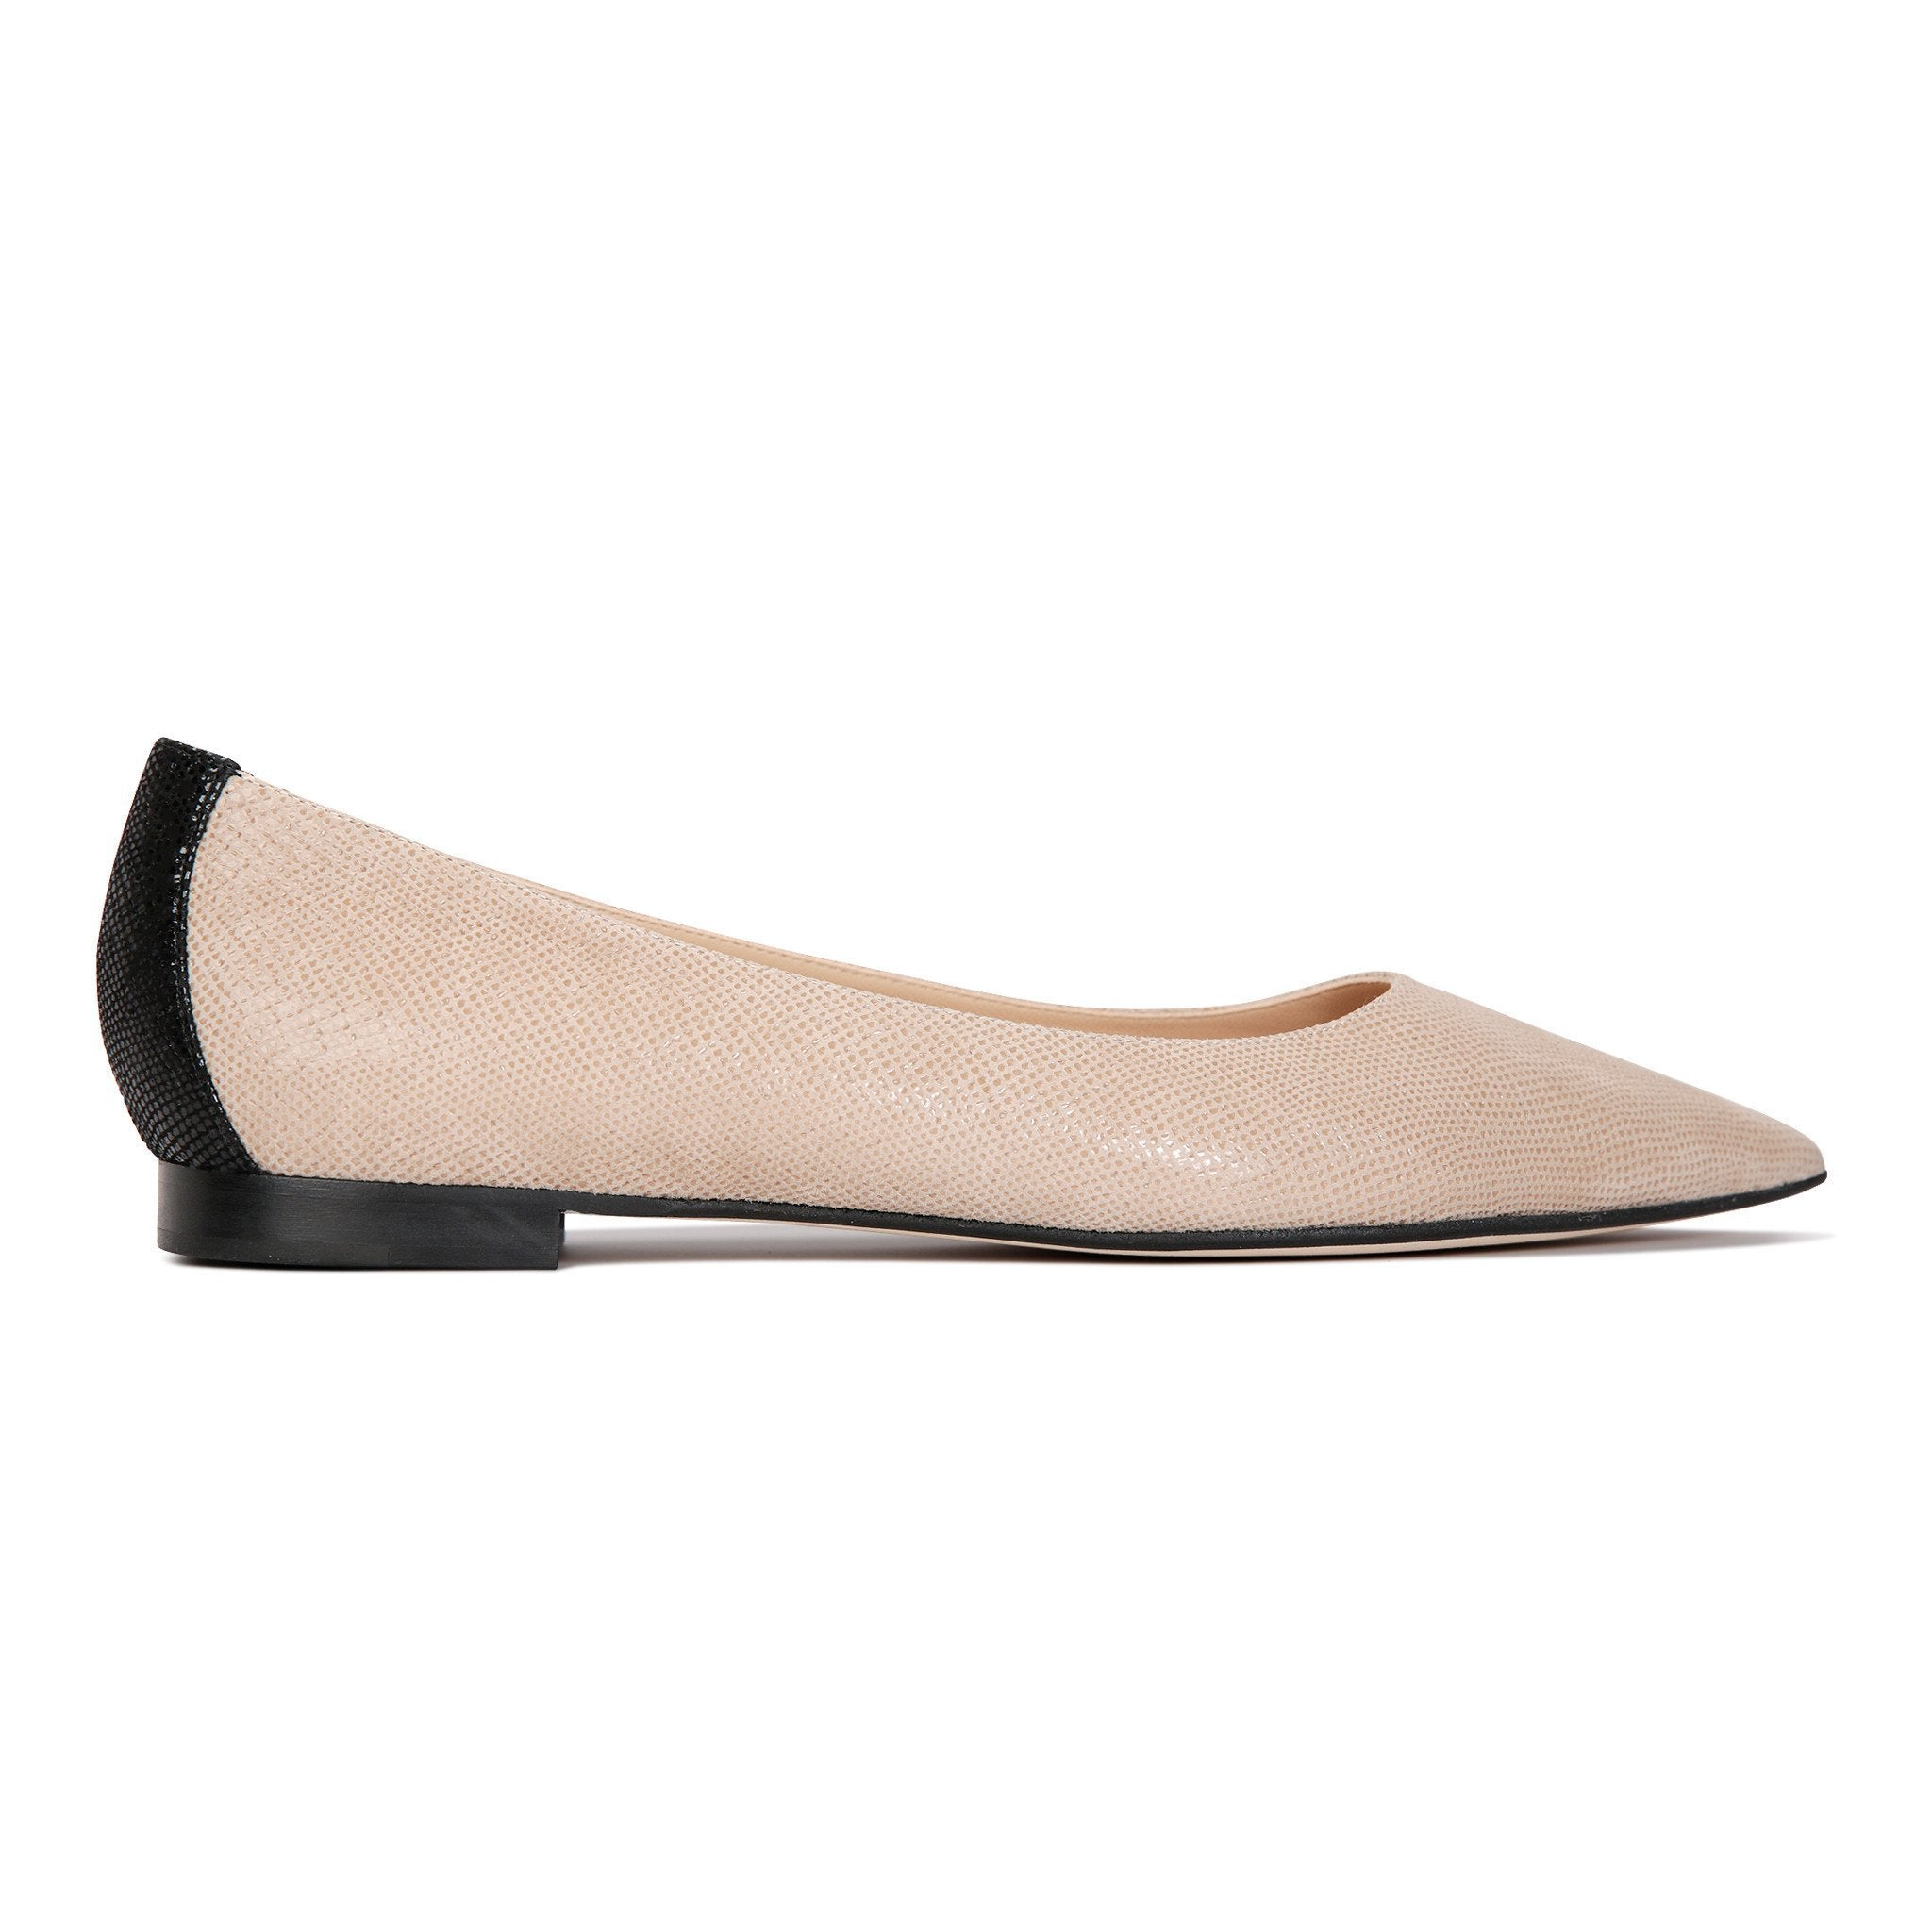 COMO - Karung Tan + Nero, VIAJIYU - Women's Hand Made Sustainable Luxury Shoes. Made in Italy. Made to Order.